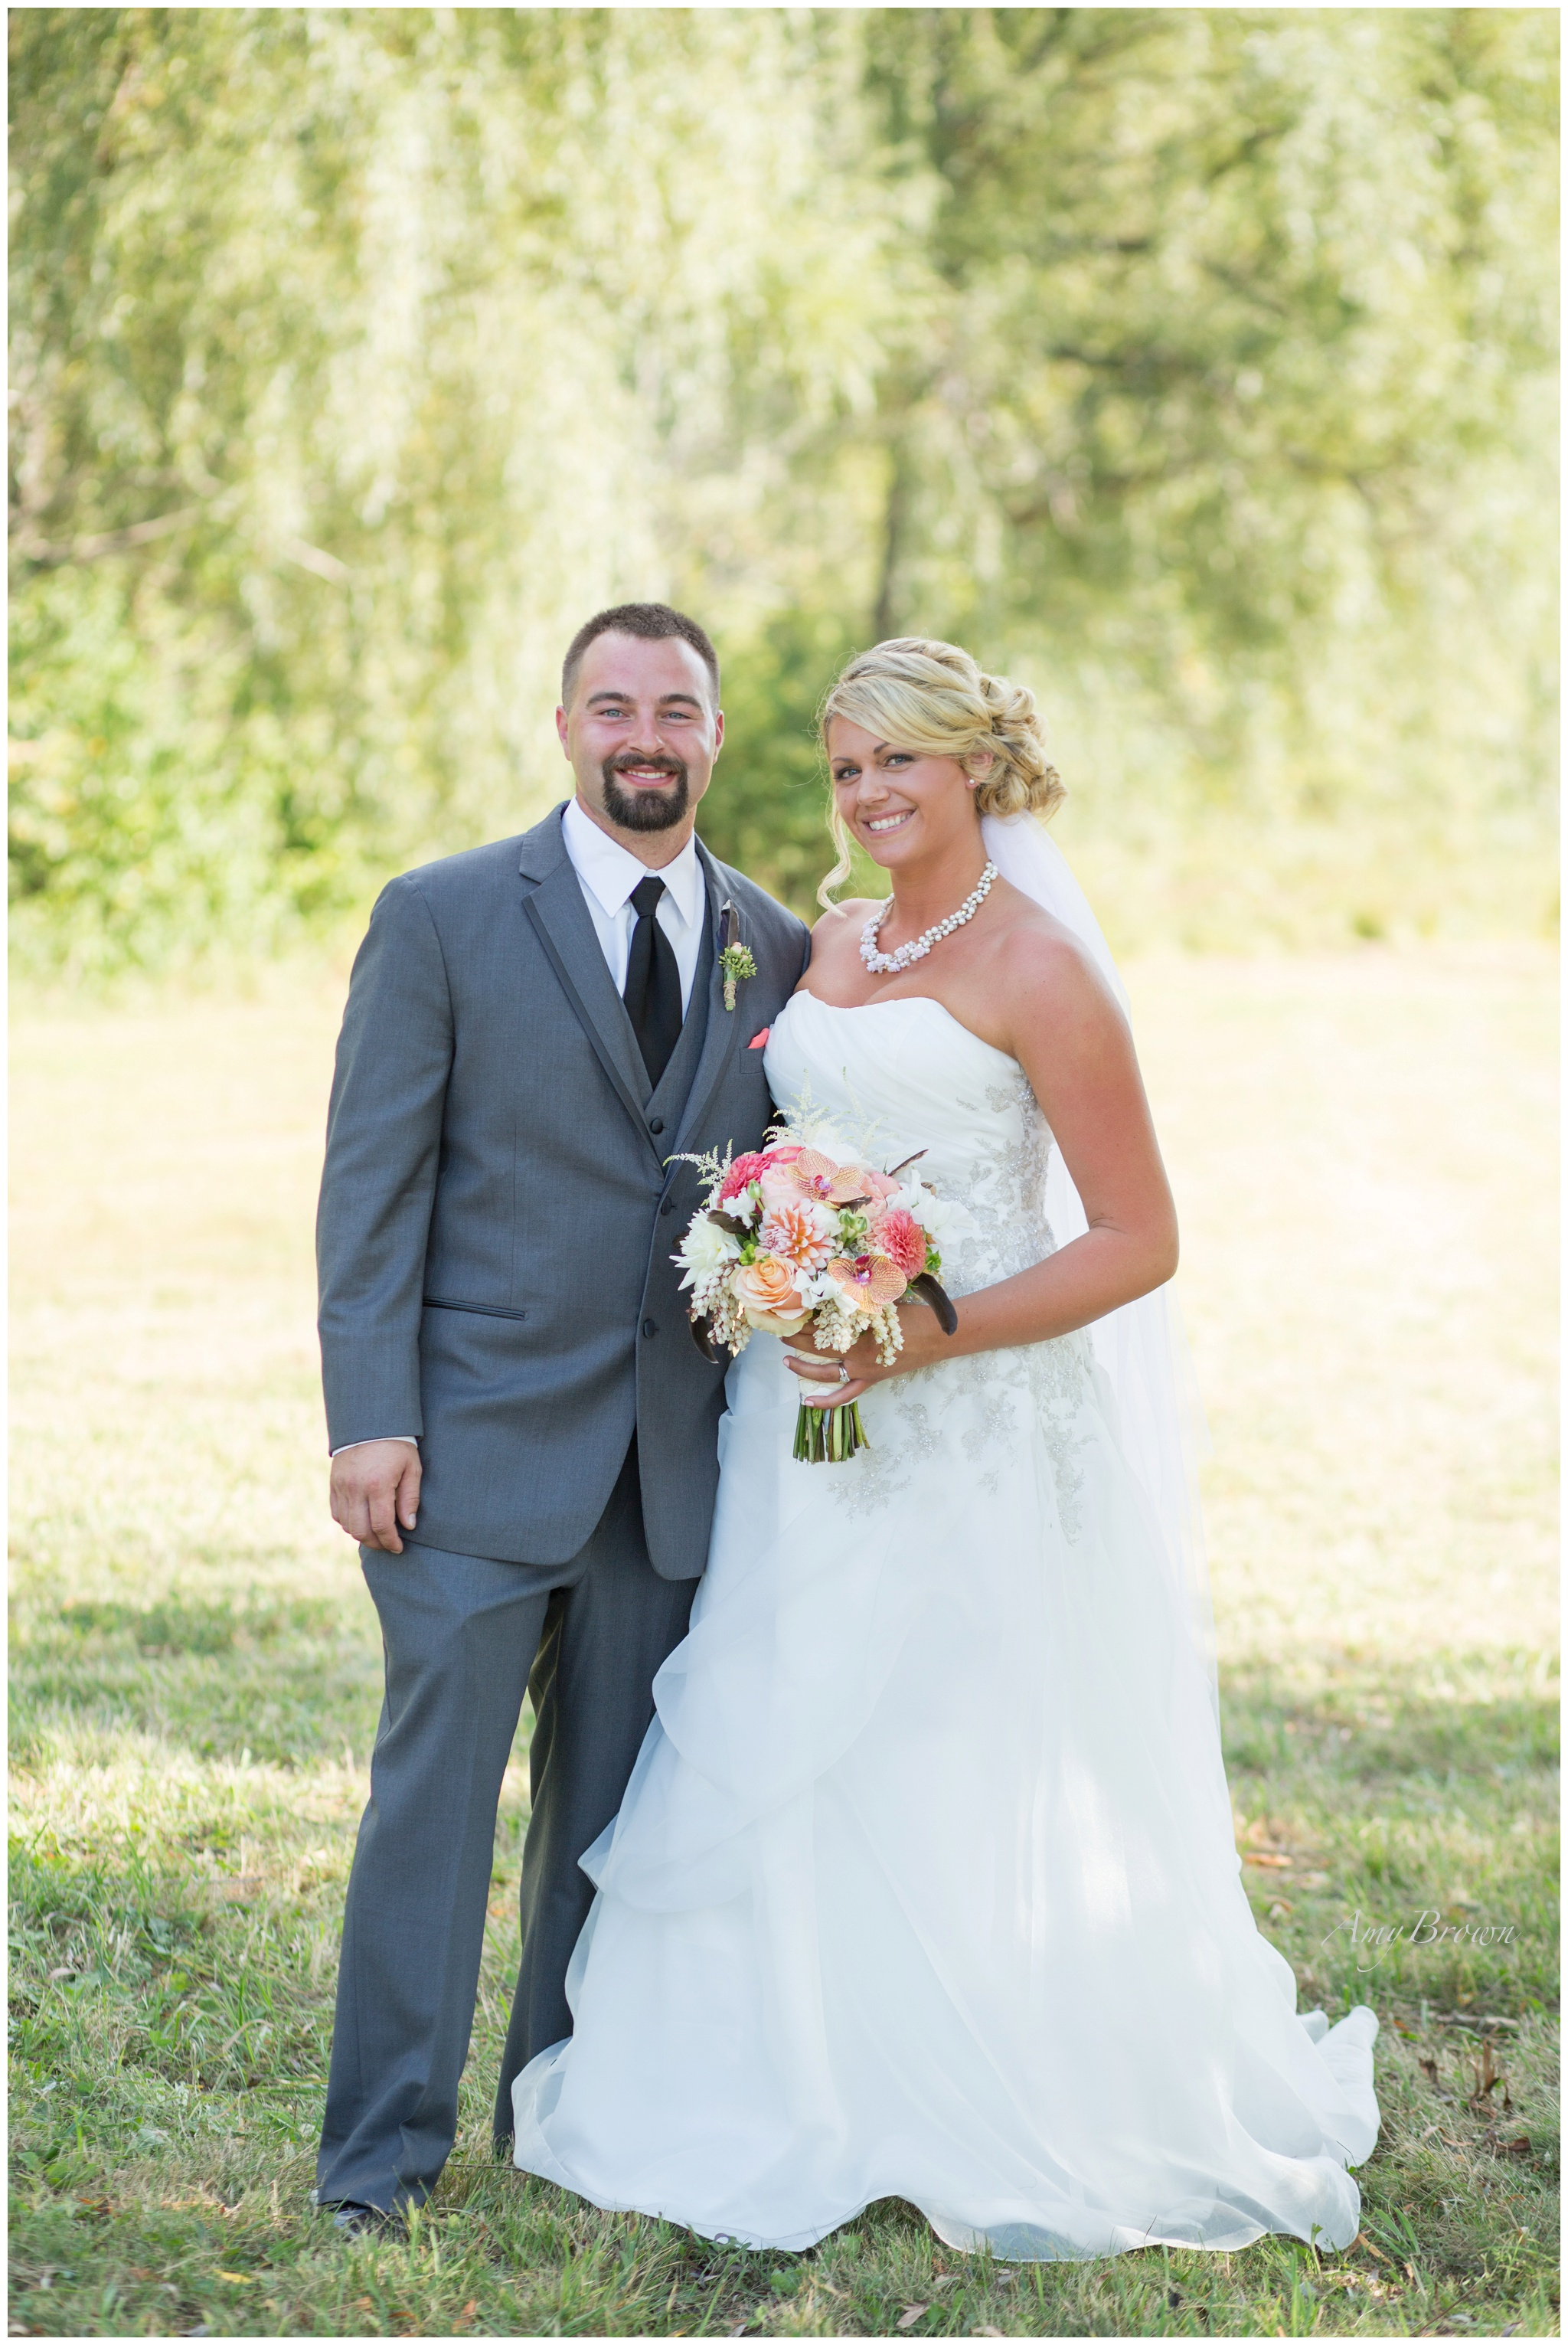 nh wedding photographer | Farm Wedding | Amy Brown Photography